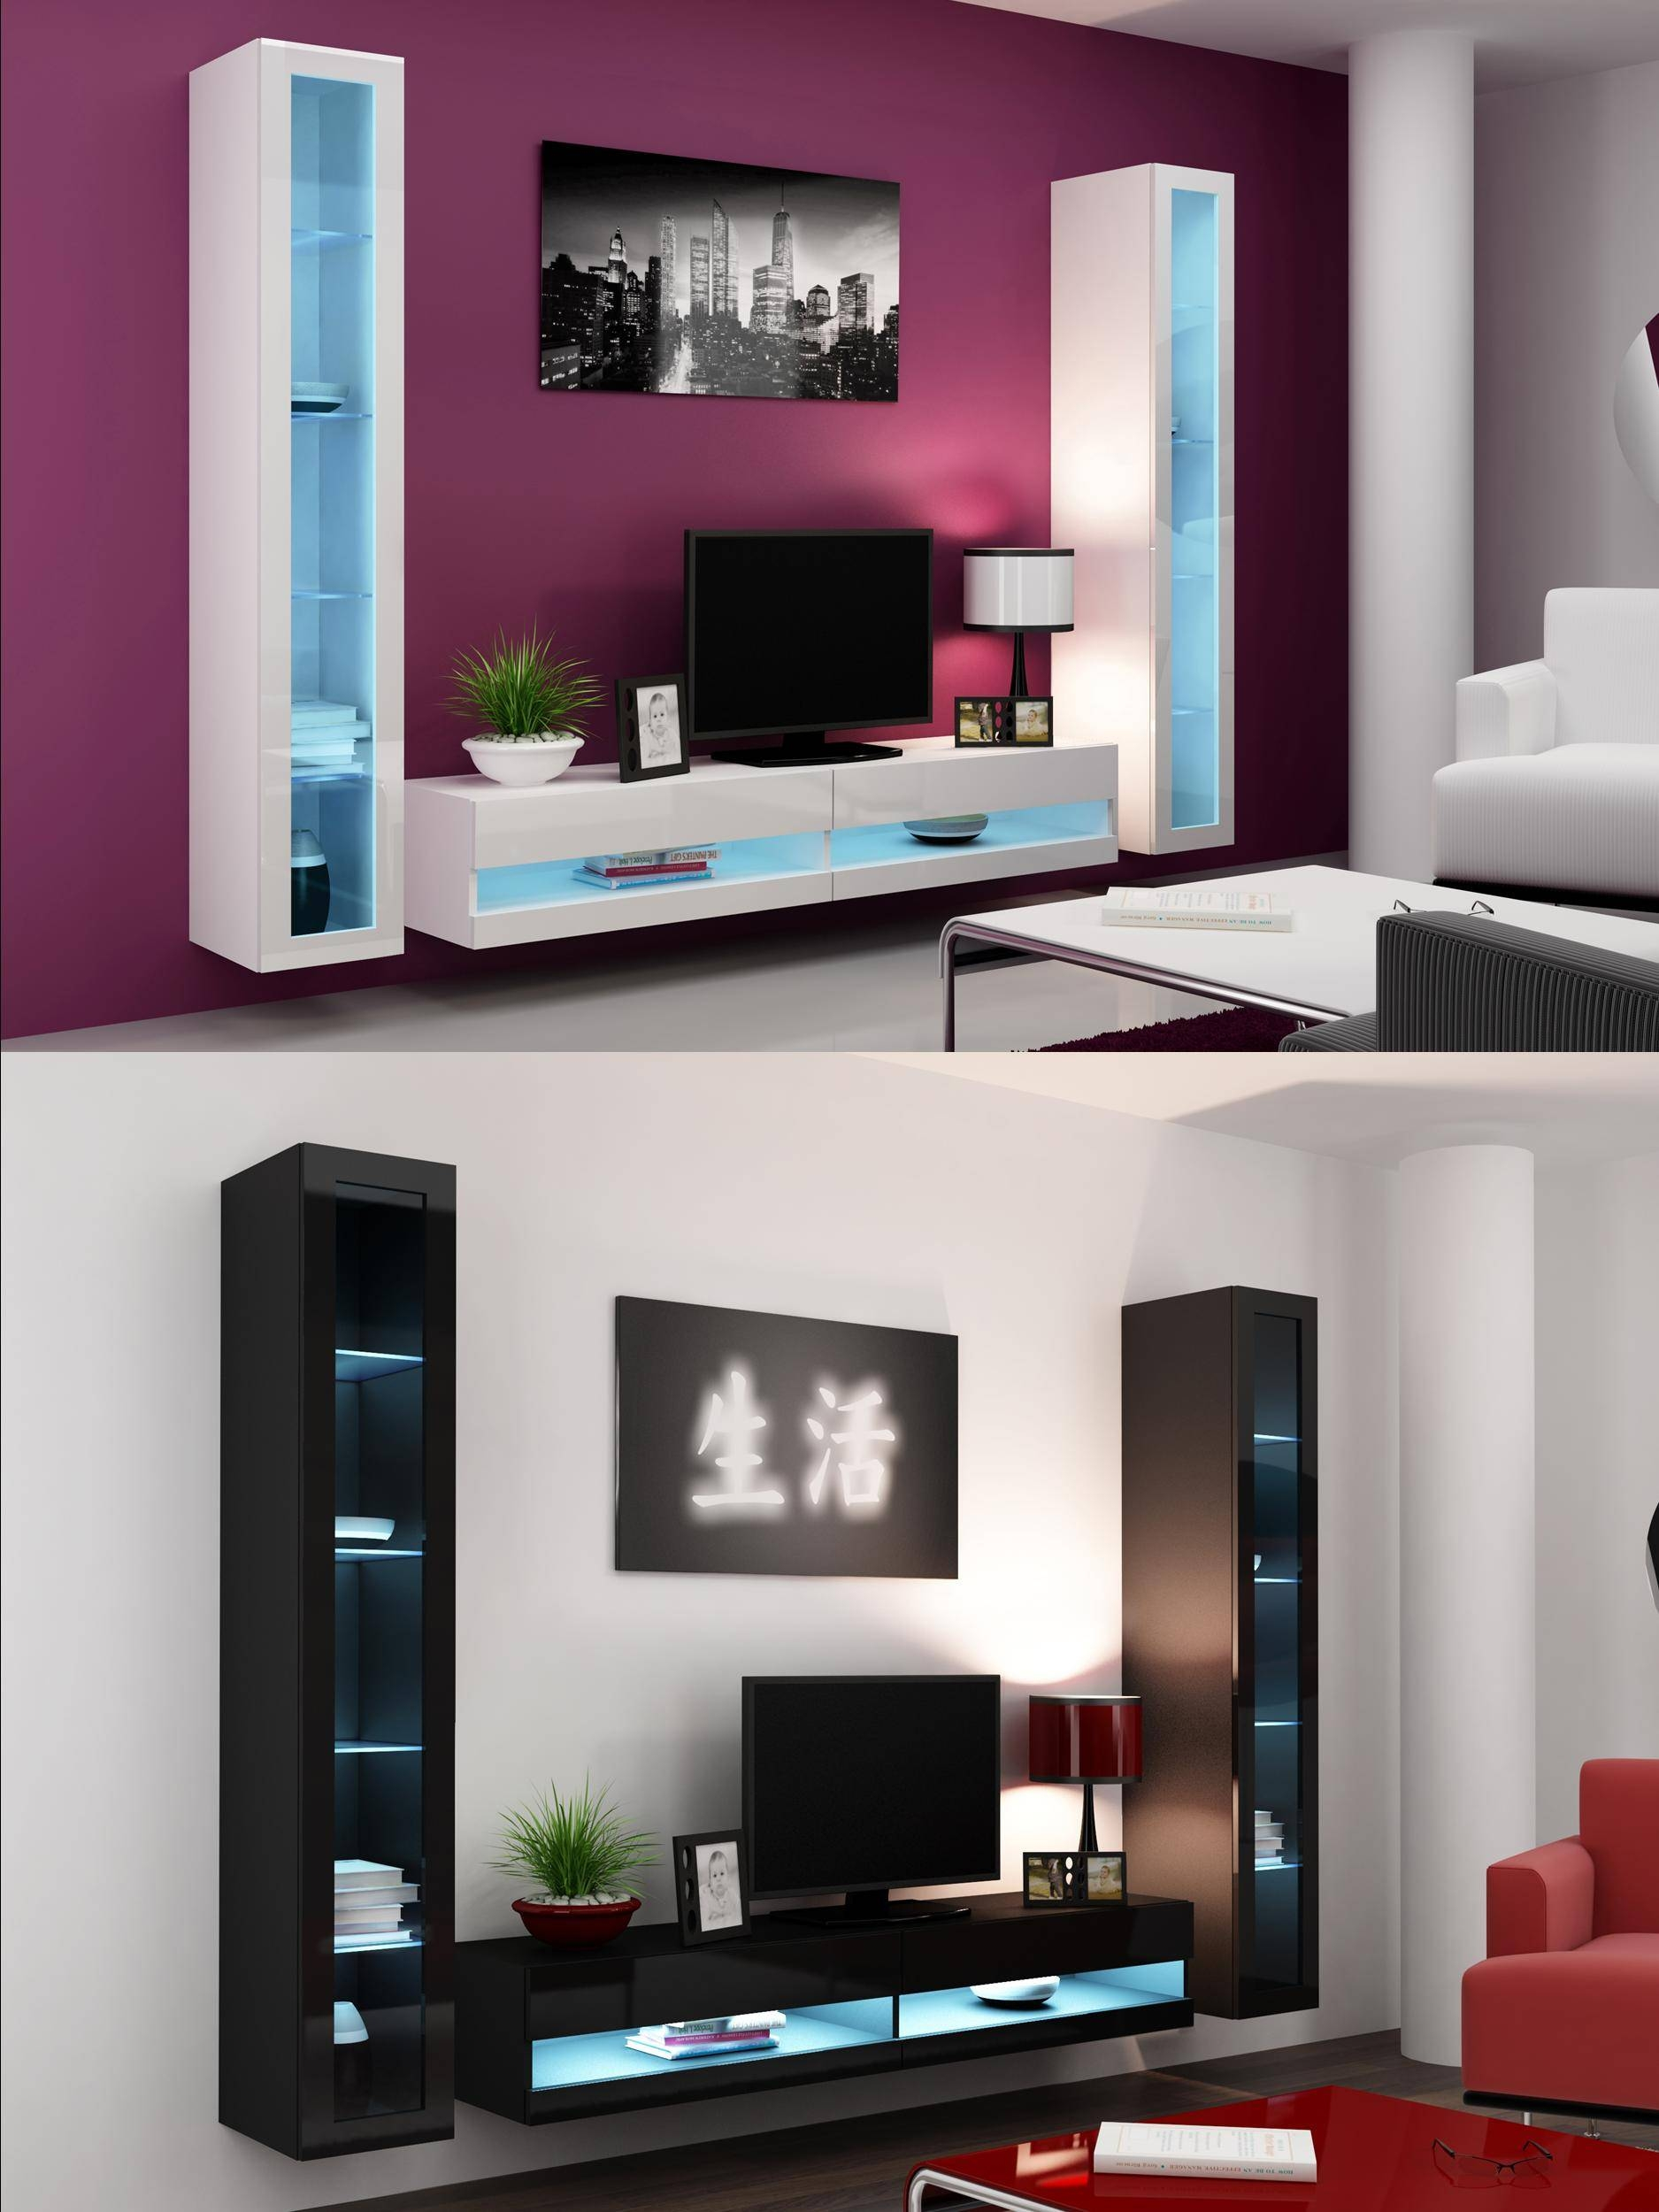 High Gloss Living Room Set With Led Lights, Tv Stand, Wall Mounted pertaining to Tv Cabinets And Wall Units (Image 5 of 15)